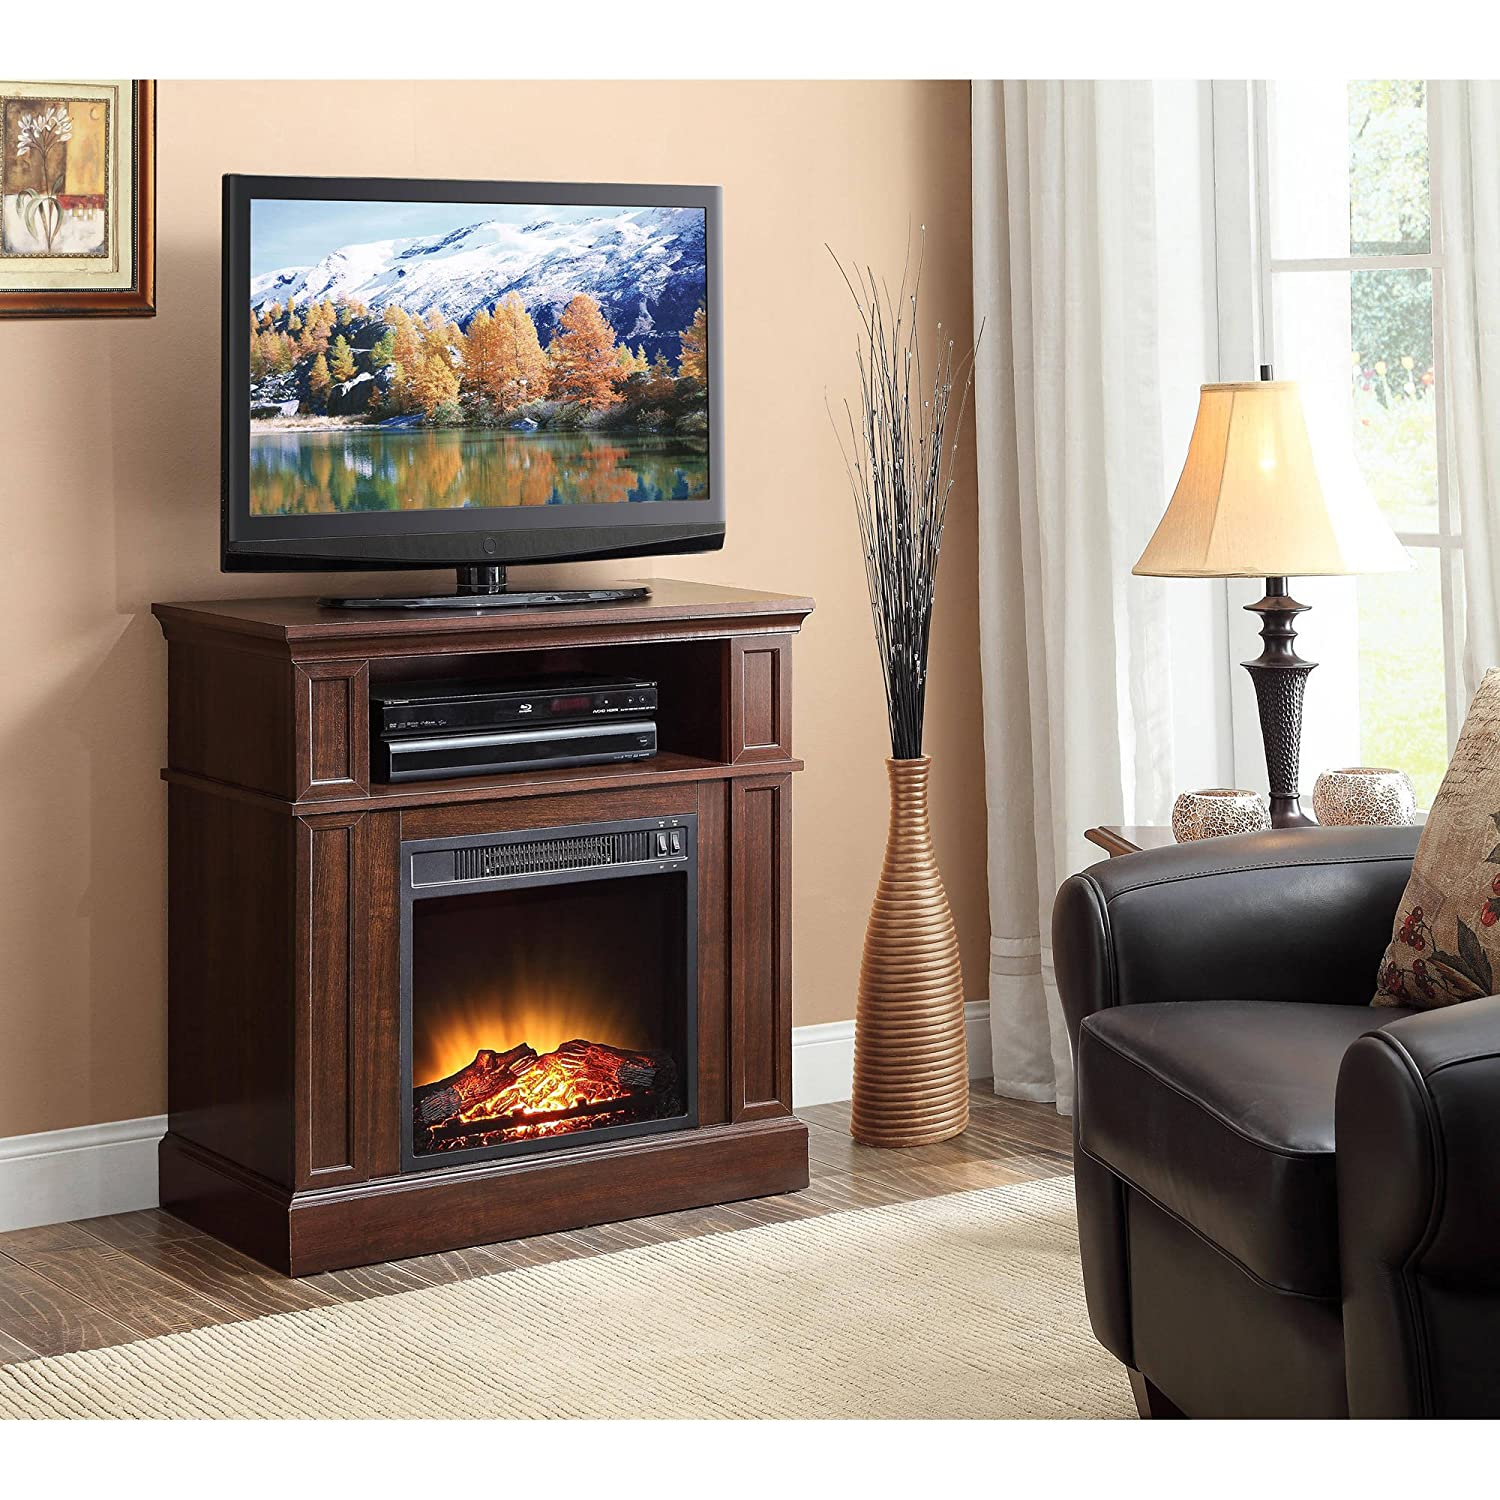 "Amazon.com: 31"" Mainstays Media Fireplace Heater for TV"